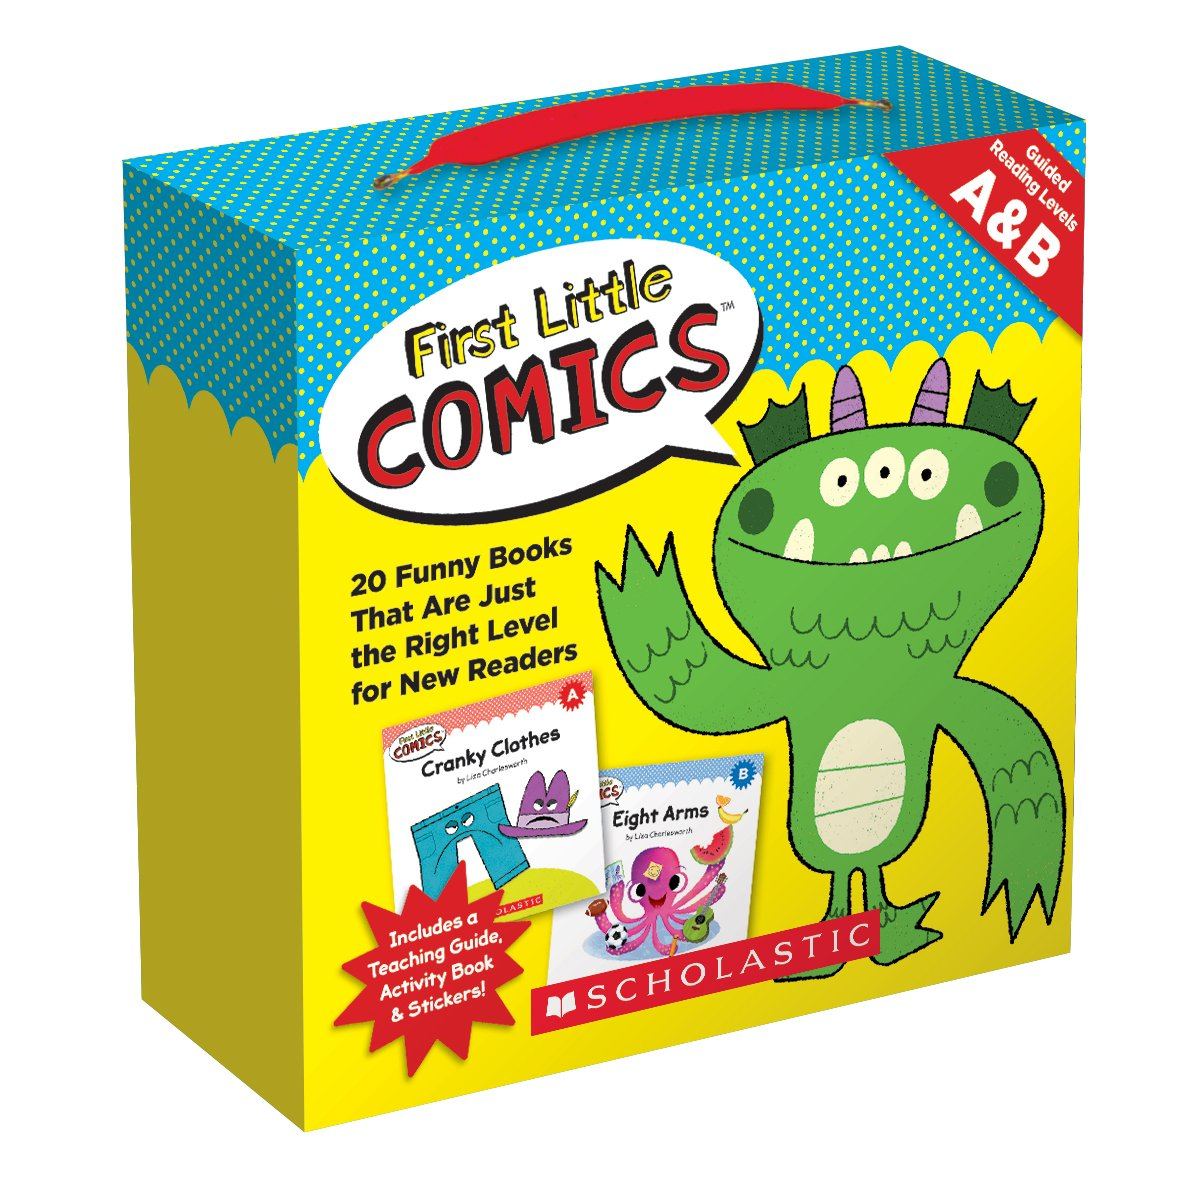 Download First Little Comics Parent Pack: Levels A & B: 20 Funny Books That Are Just the Right Level for New Readers PDF Text fb2 ebook